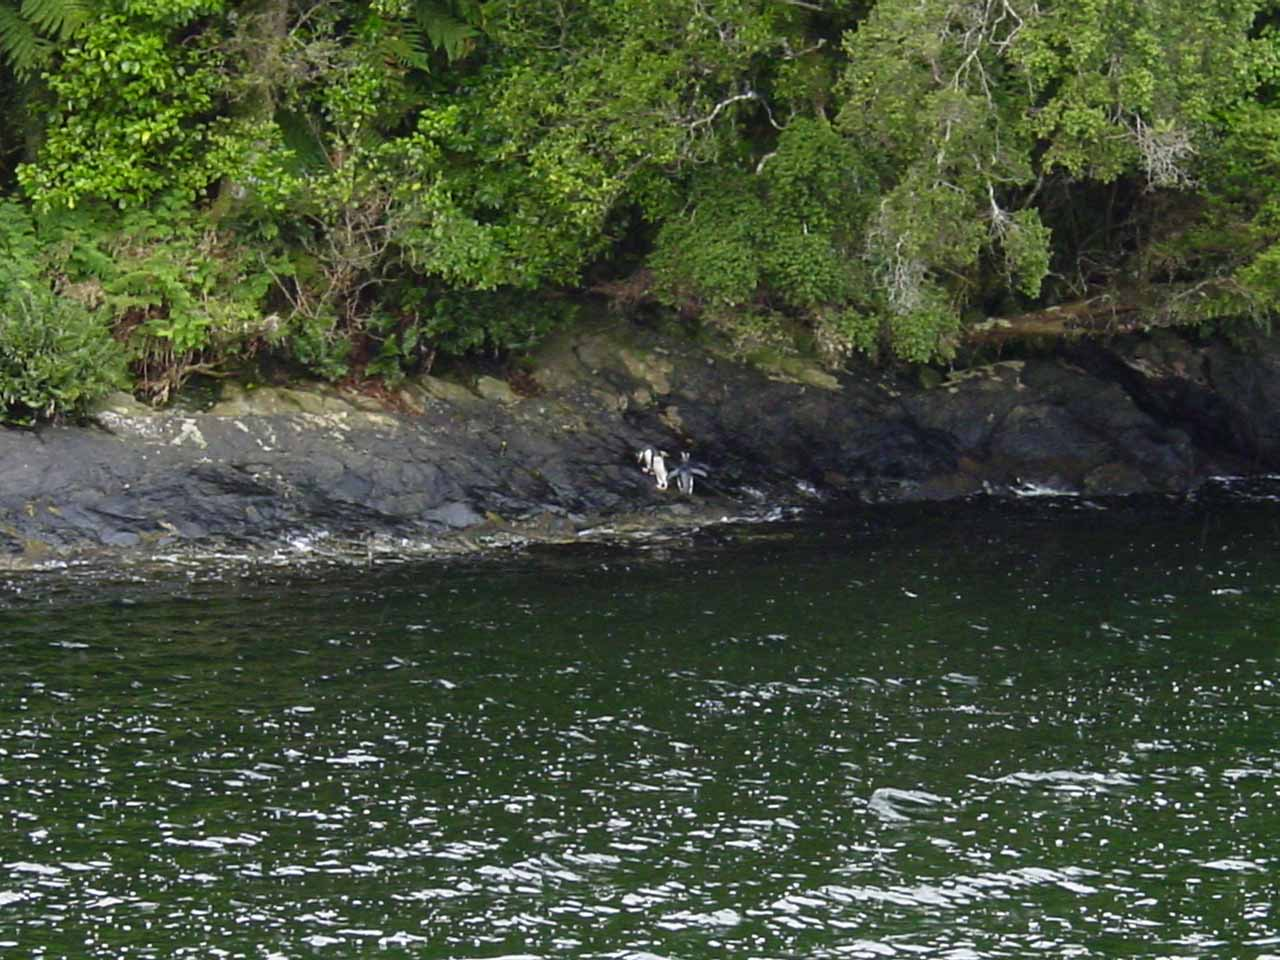 Looking at a trio of Fiordland Crested Penguins